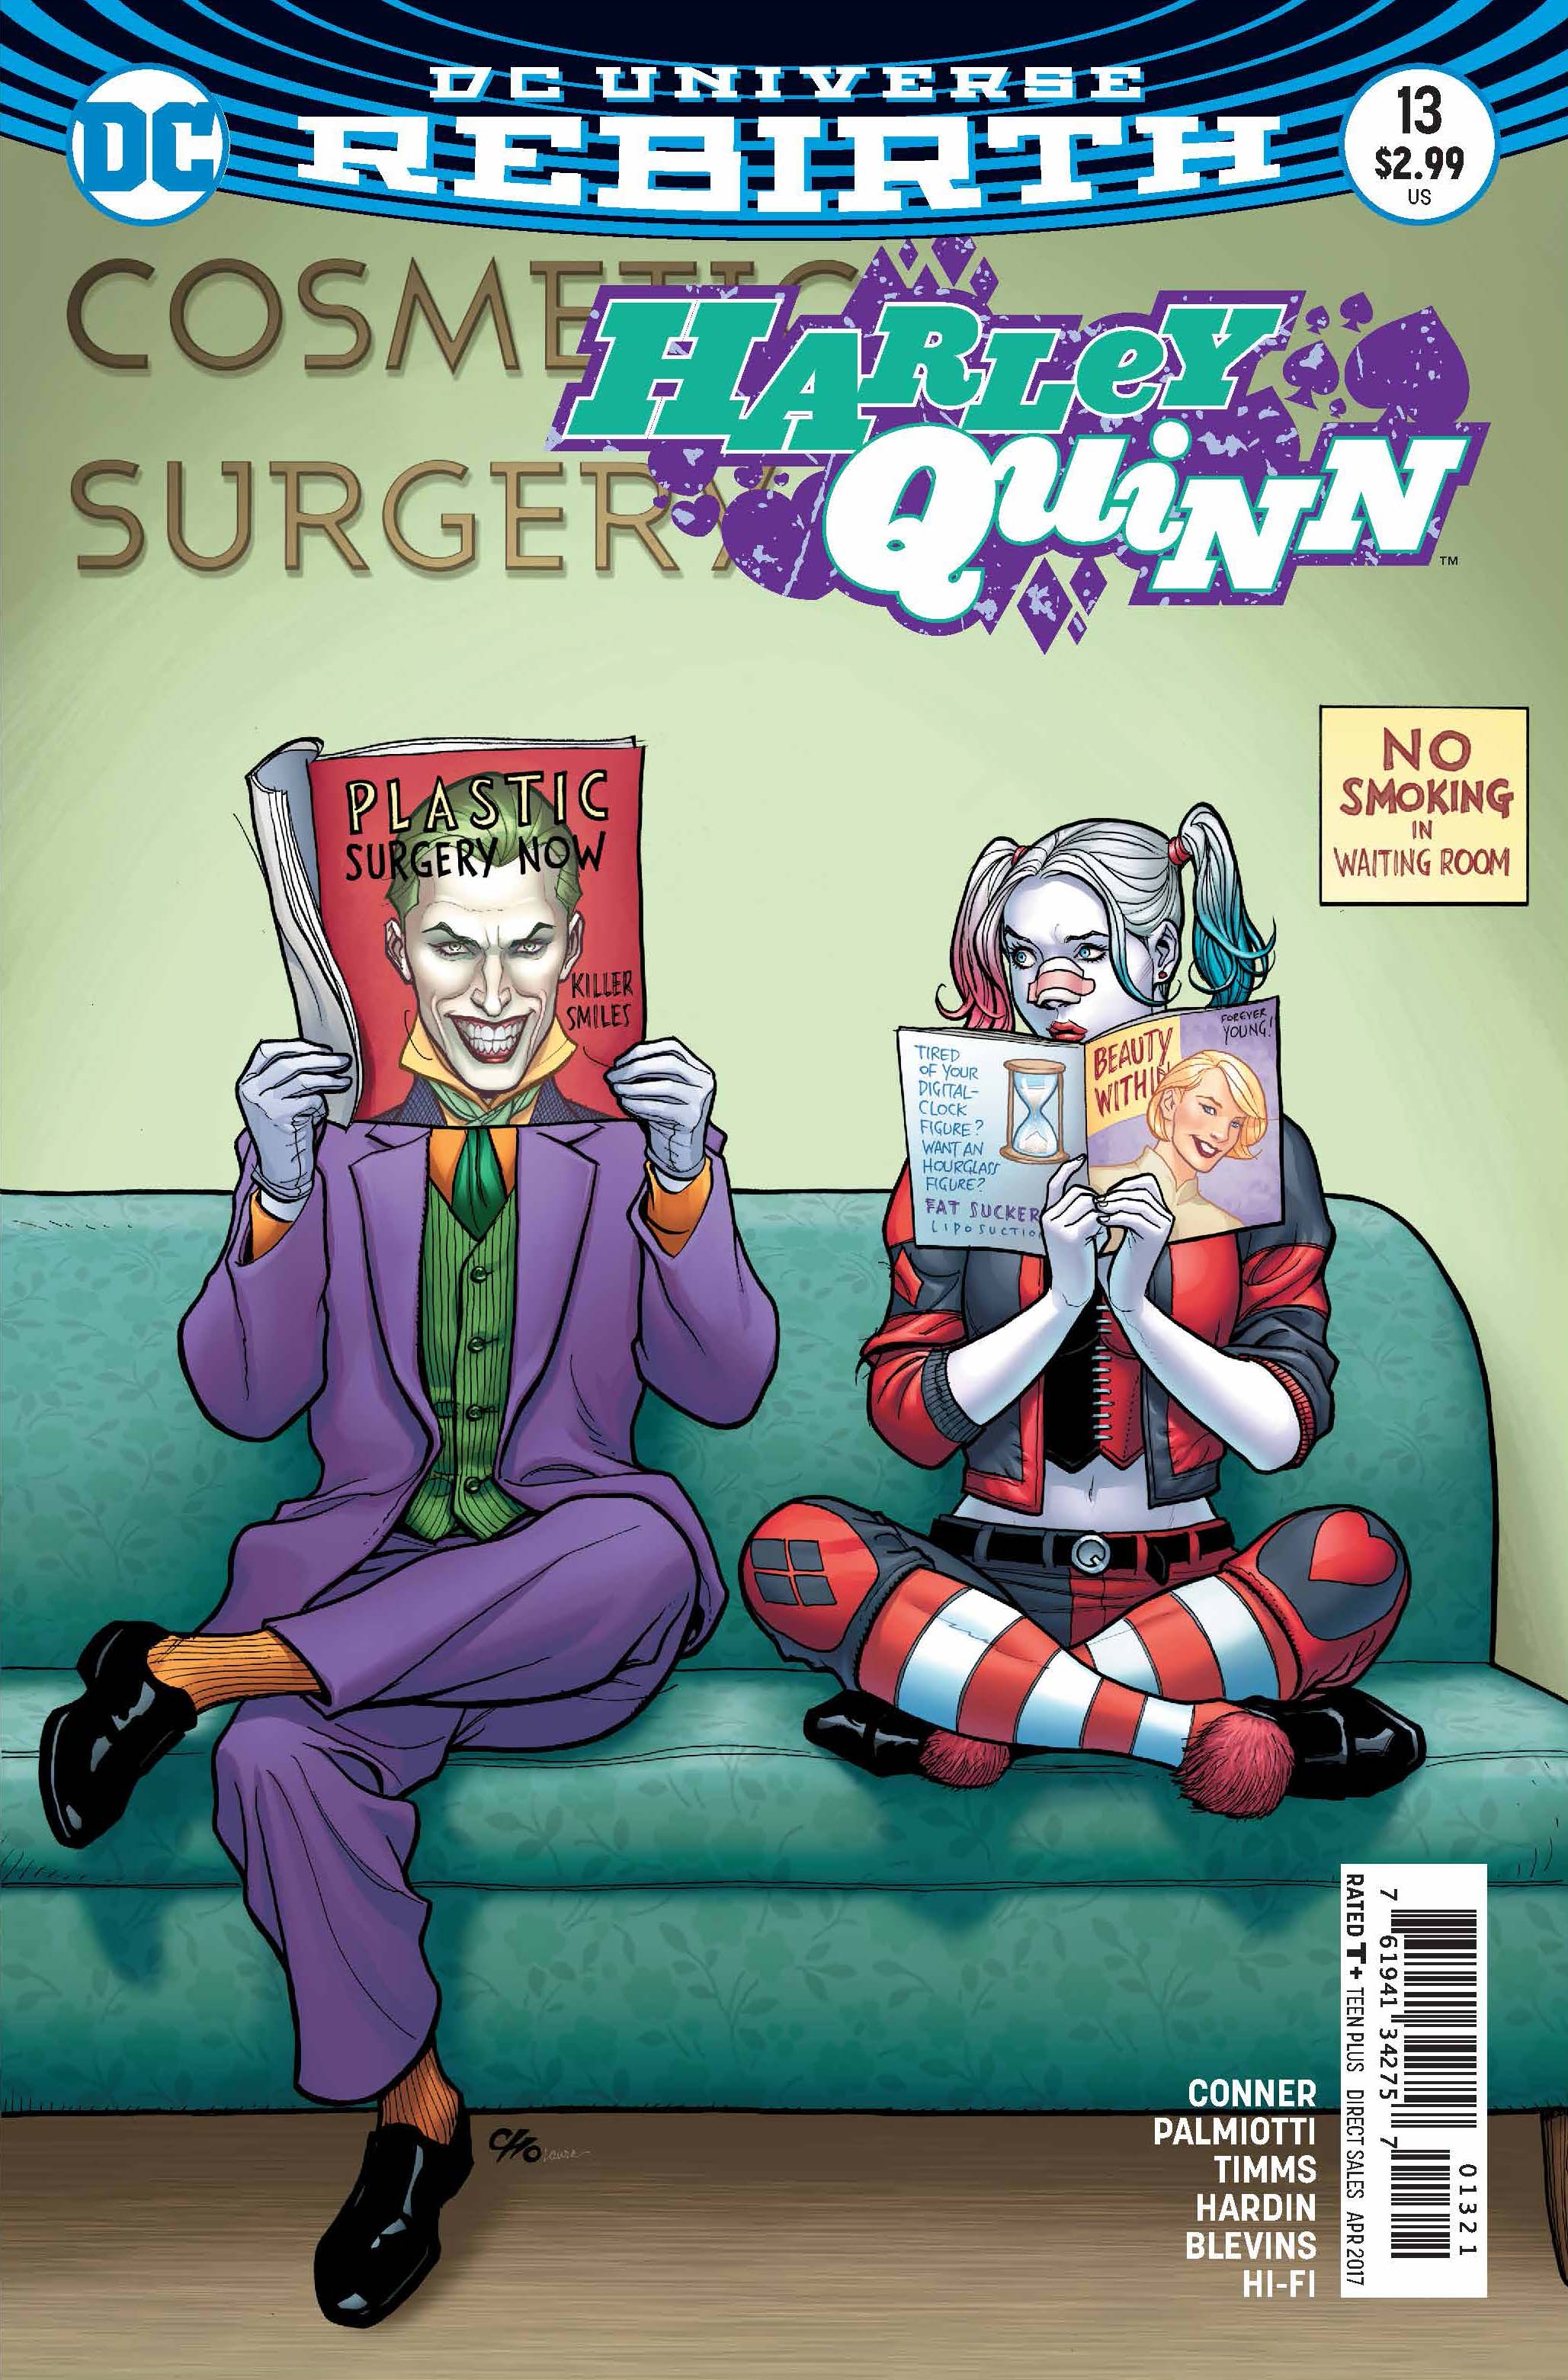 """""""Joker Loves Harley"""" finale! Just how did a gentle, """"reformed"""" Joker come to arrive at Harley's doorstep when everyone believed him dead and gone? The answer's in this issue—and it'll shock you!"""